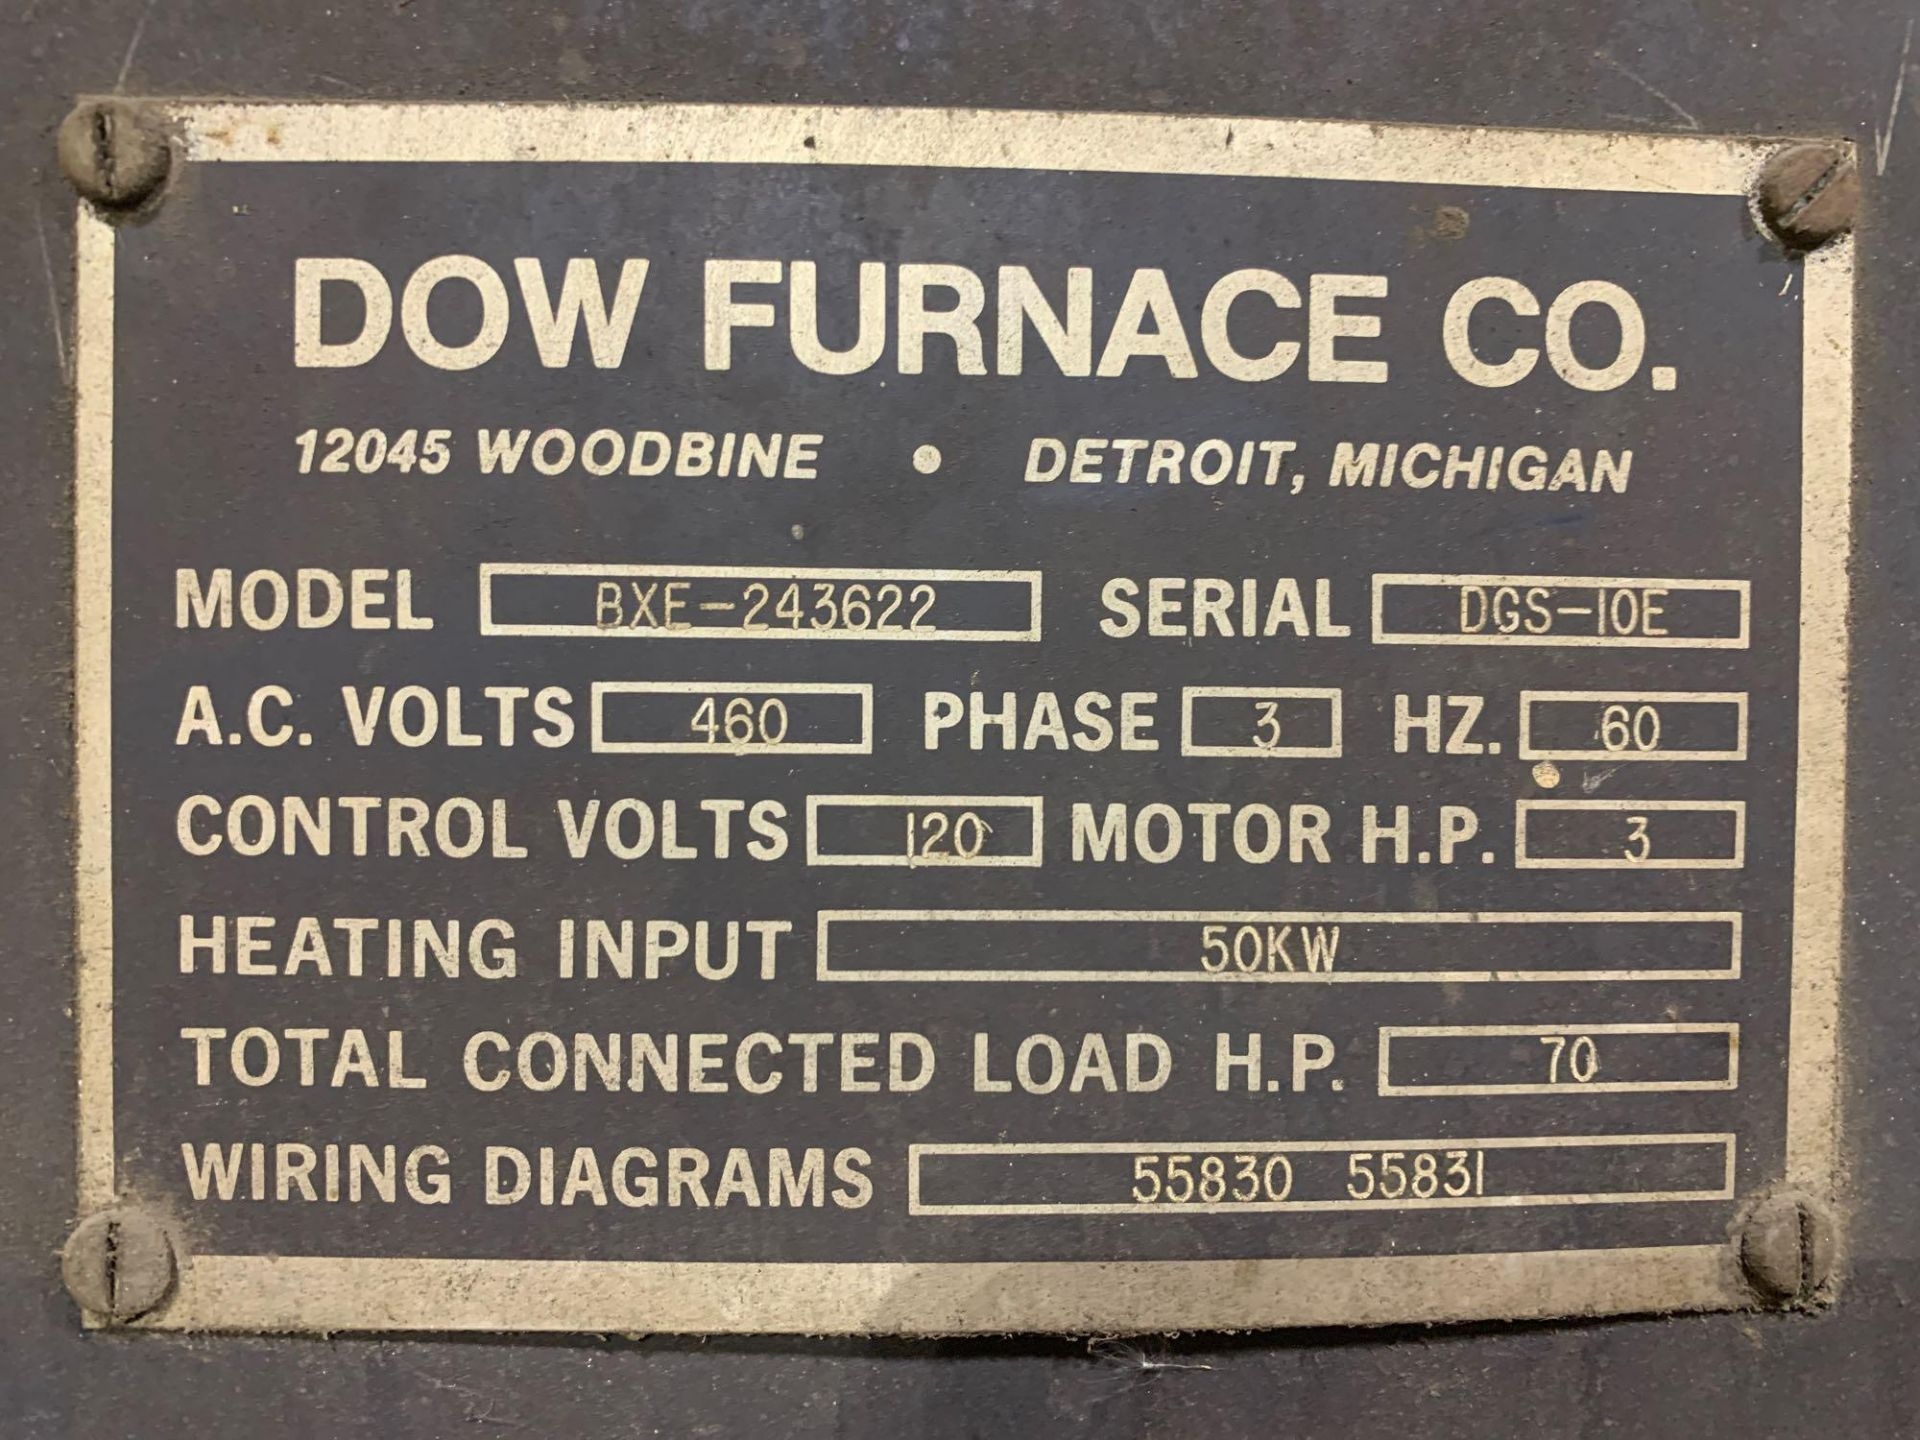 Dow Furnace Co. Electric Draw Furnace Seller States It Will Do At Least 1200 Degrees Model Bxe-24362 - Image 12 of 21